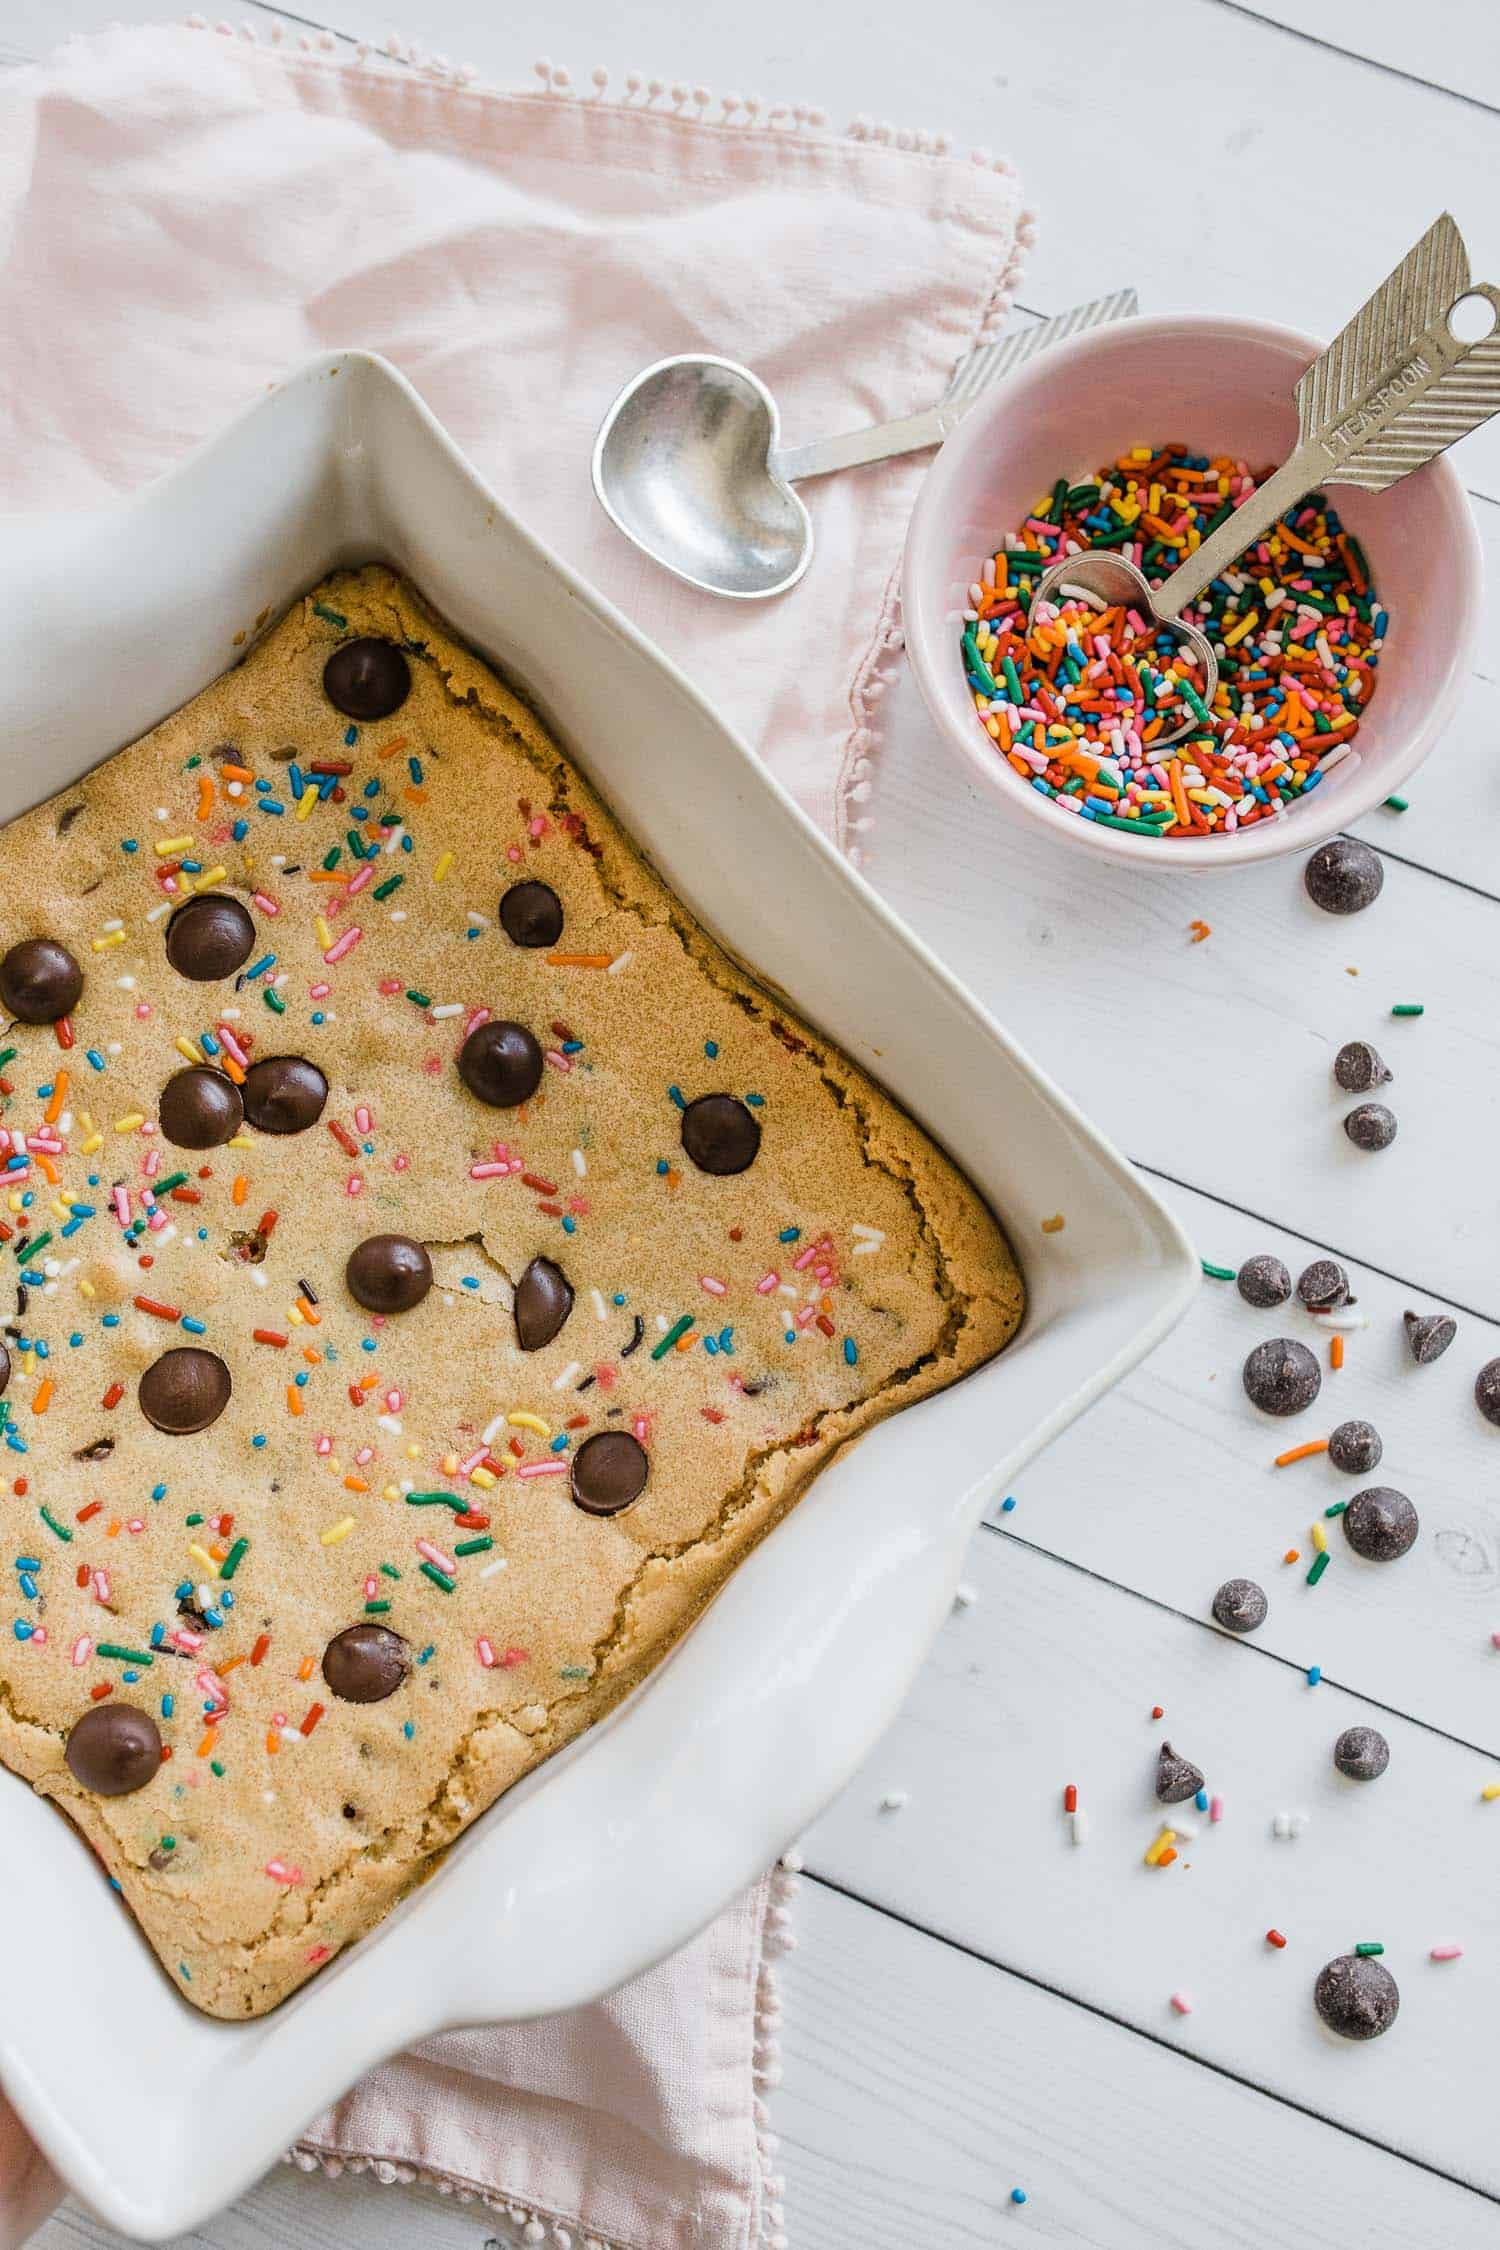 blondies with sprinkles and chocolate chips for dessert